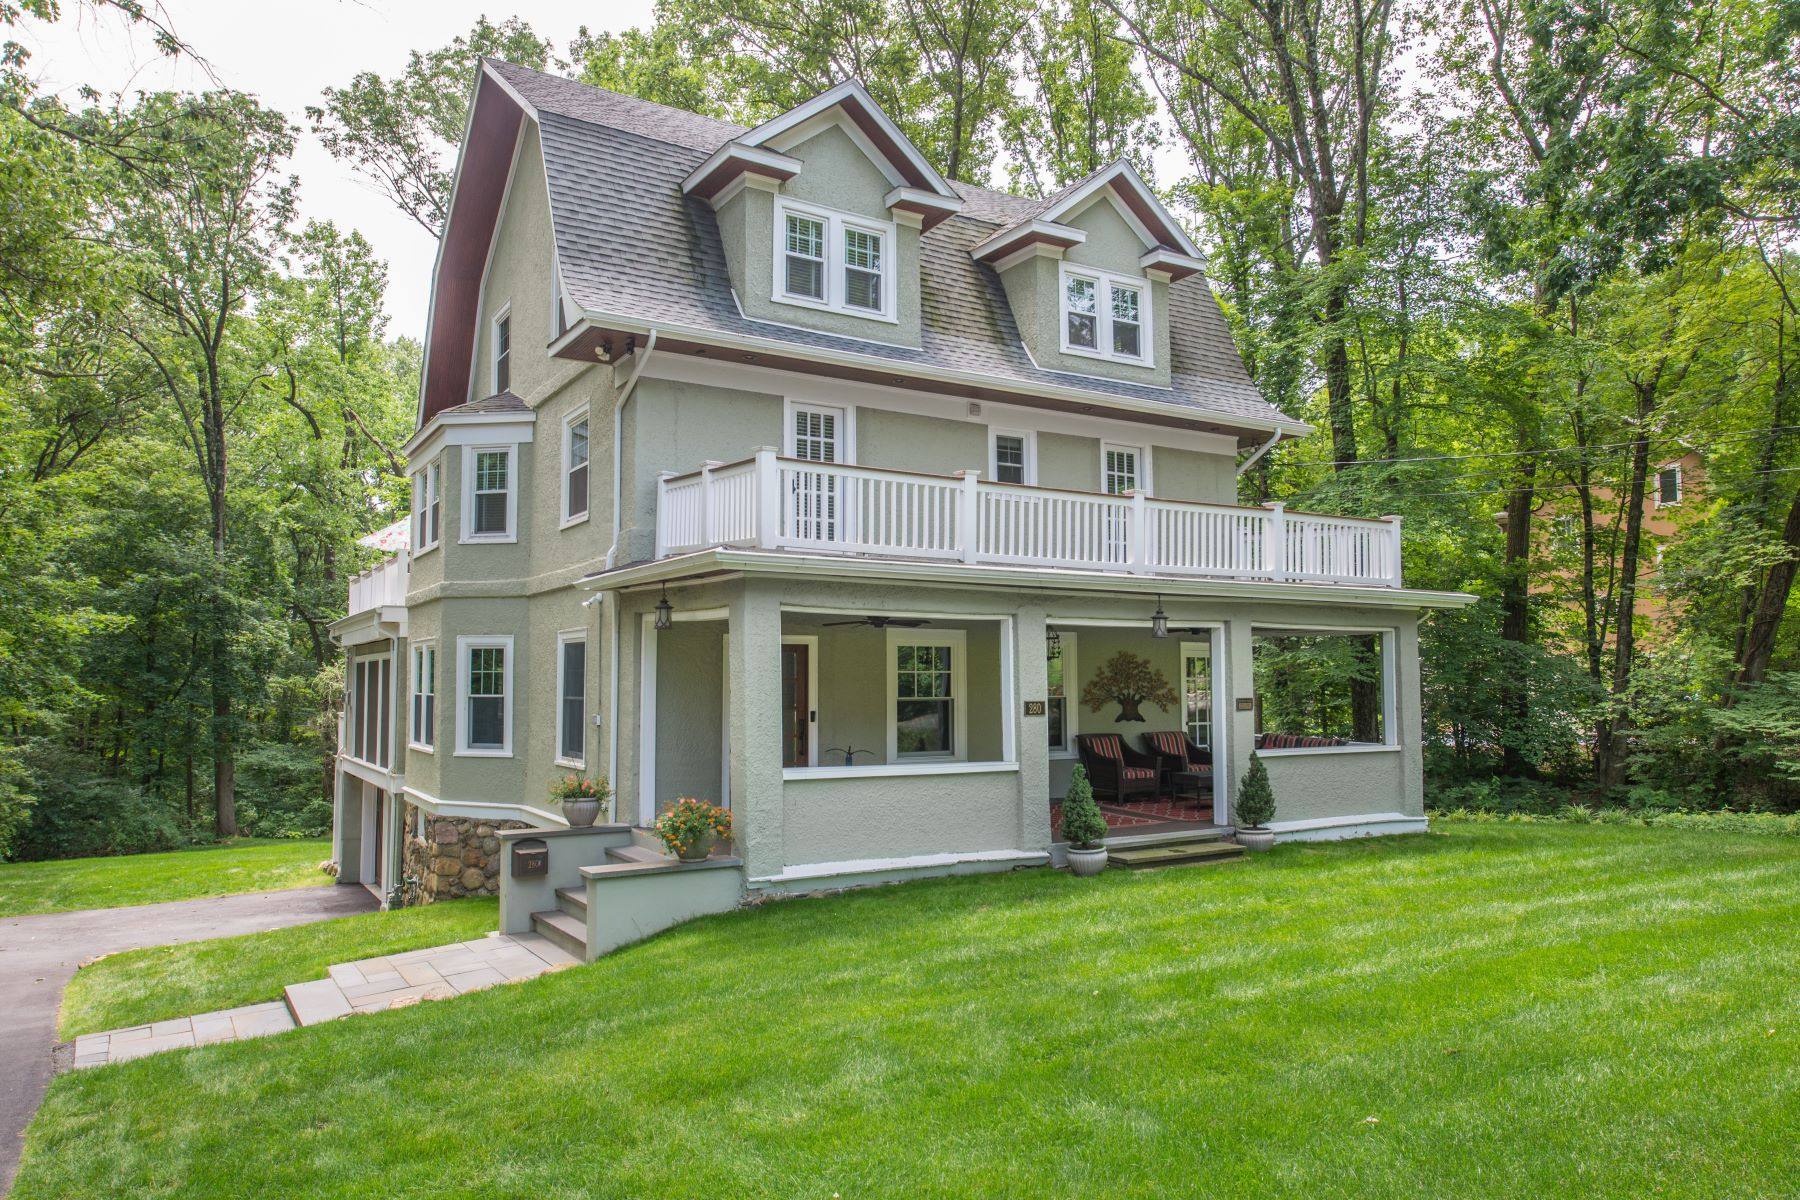 Single Family Homes for Sale at Great Opportunity 280 Morris Avenue Mountain Lakes, New Jersey 07046 United States